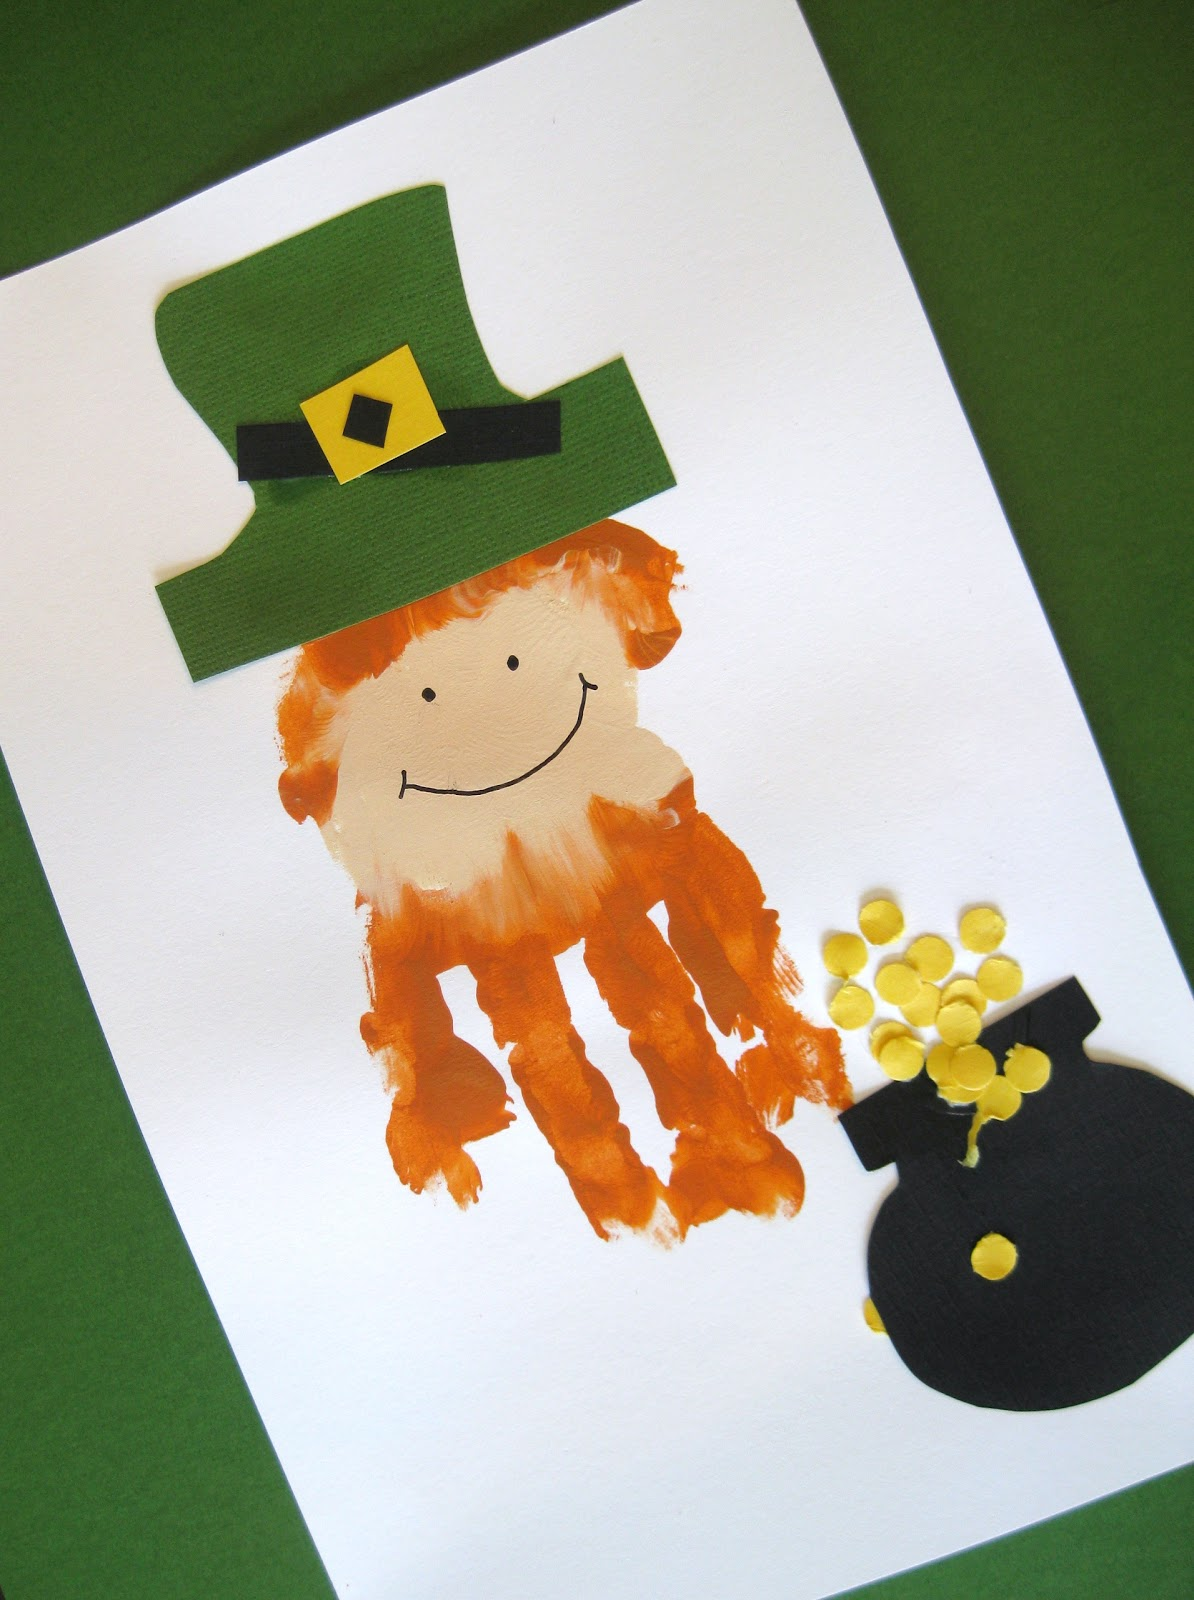 Turn A Hand Print Into Cute Leprechaun For St Patricks Day Add